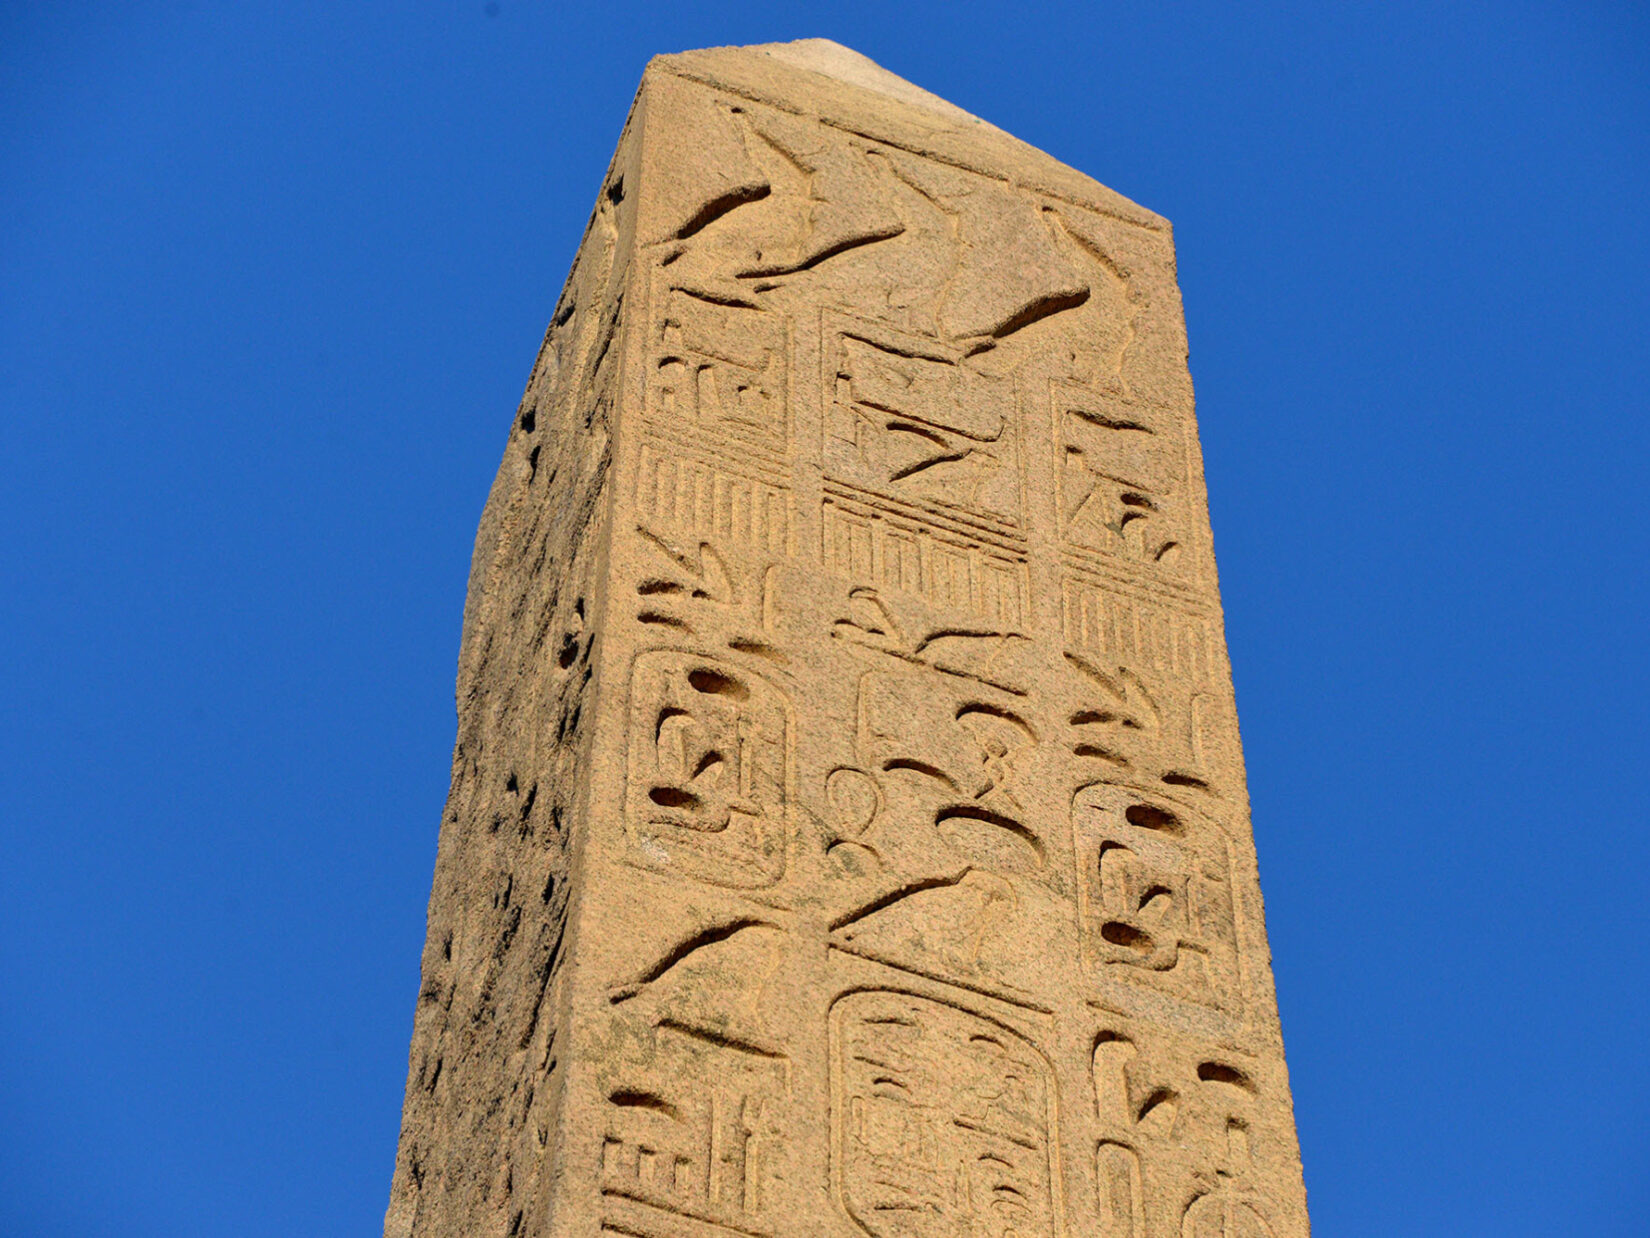 A detail view of the top of the Obelisk, showing heiroglyphs in relief